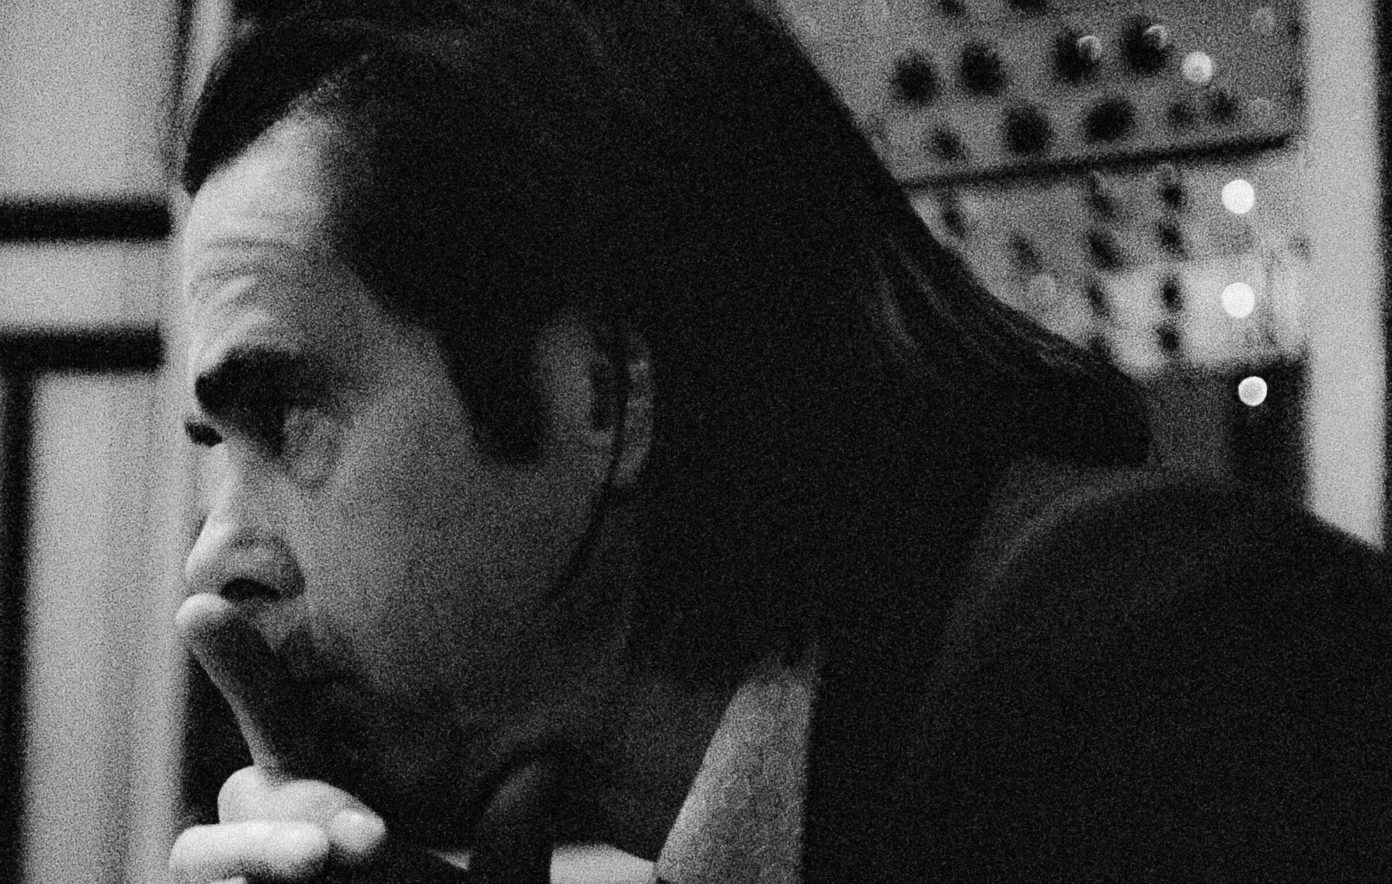 Nick Cave Letter to Cynthia Grief